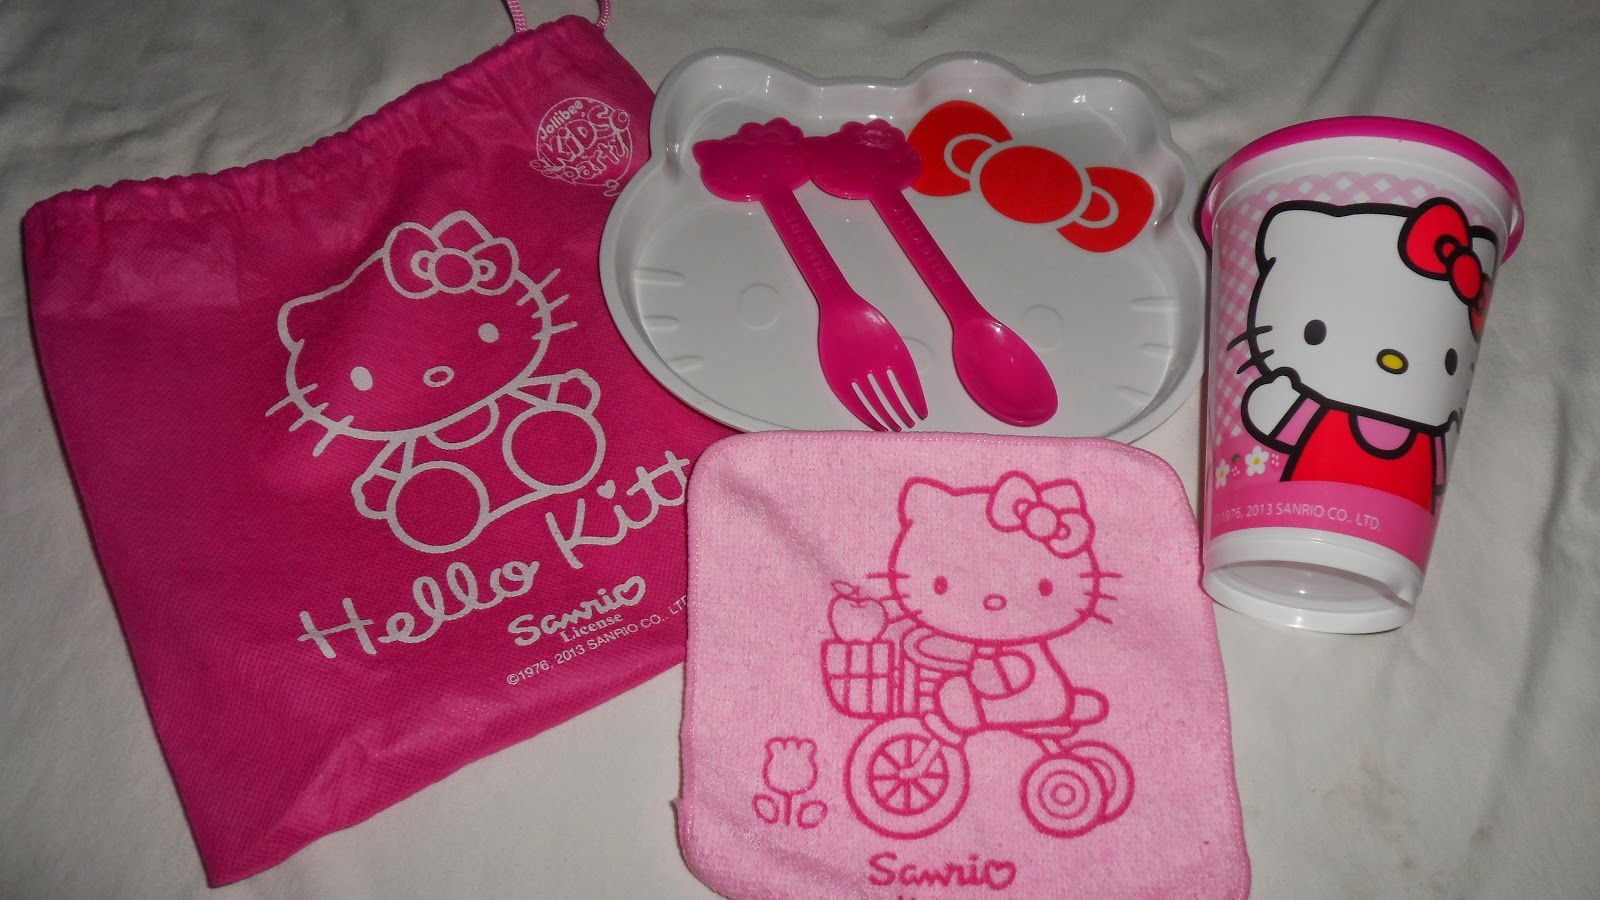 The Hello Kitty Loot Bags